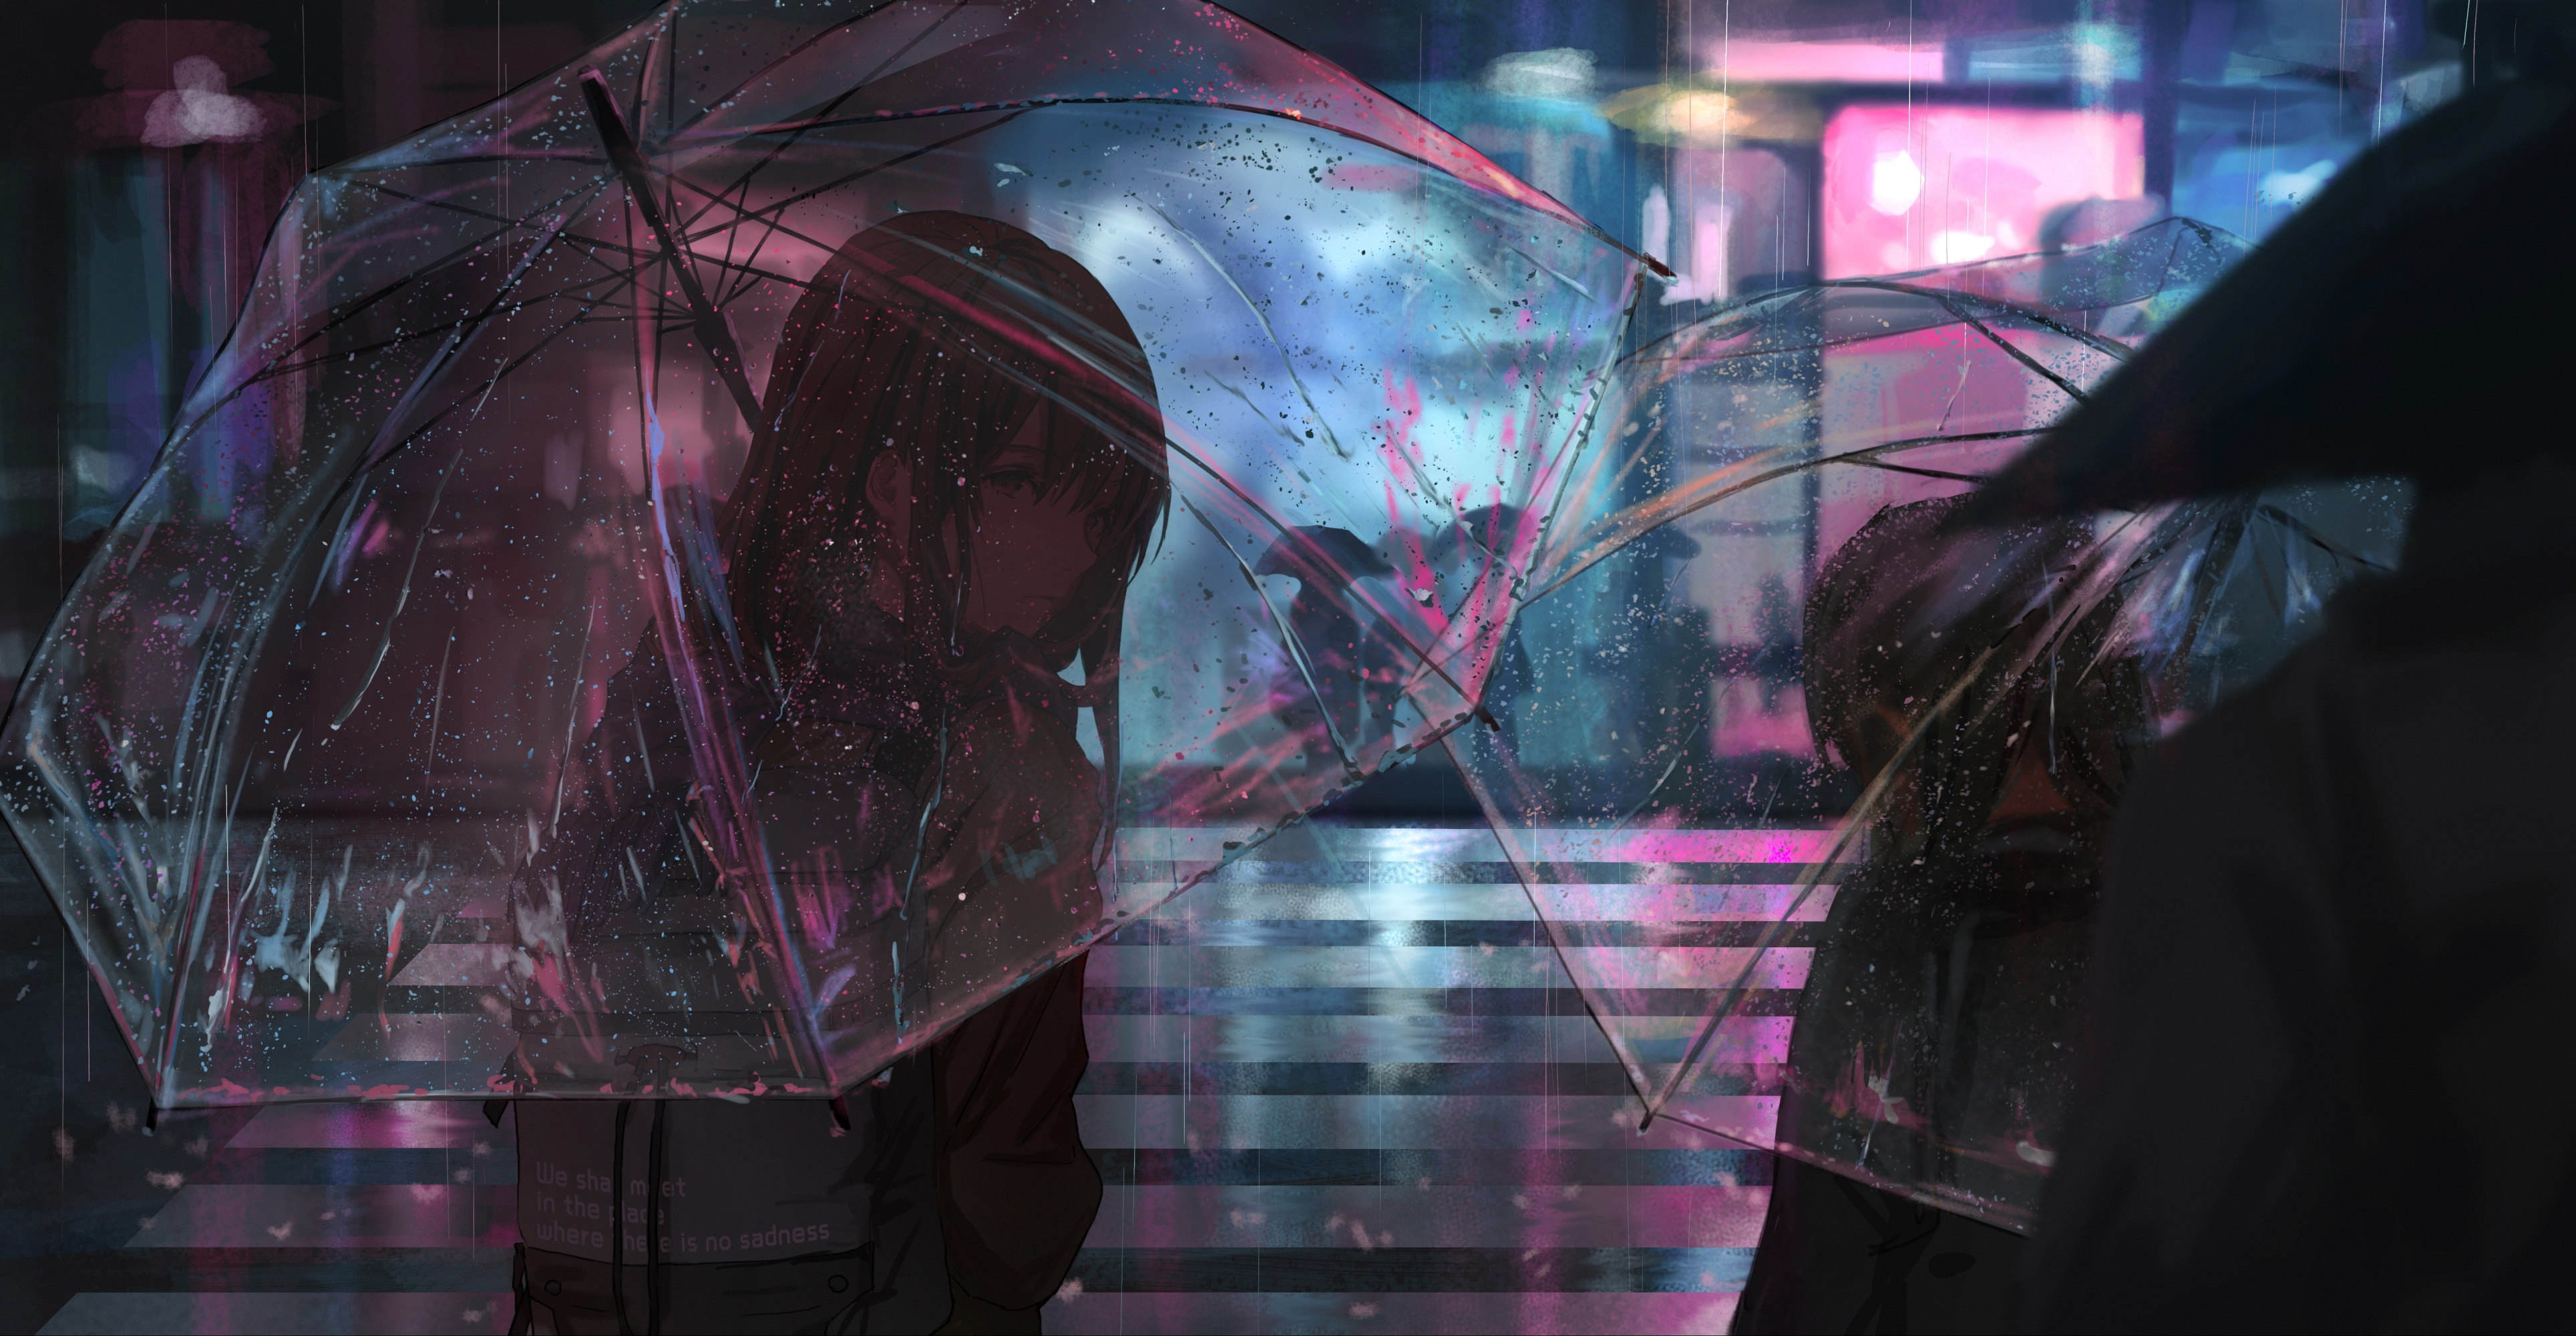 Anime 3857x2000 umbrella rain night catzz